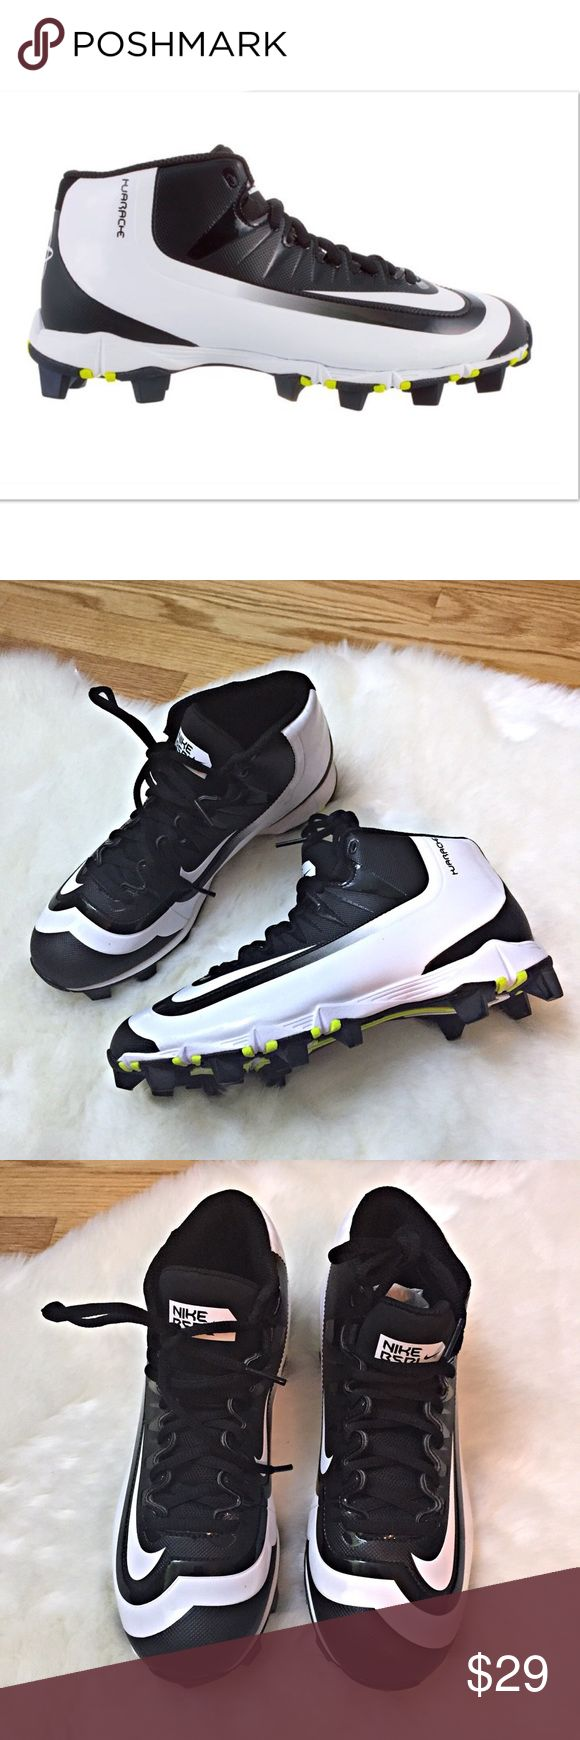 green and black baseball cleats nike training camp 2016